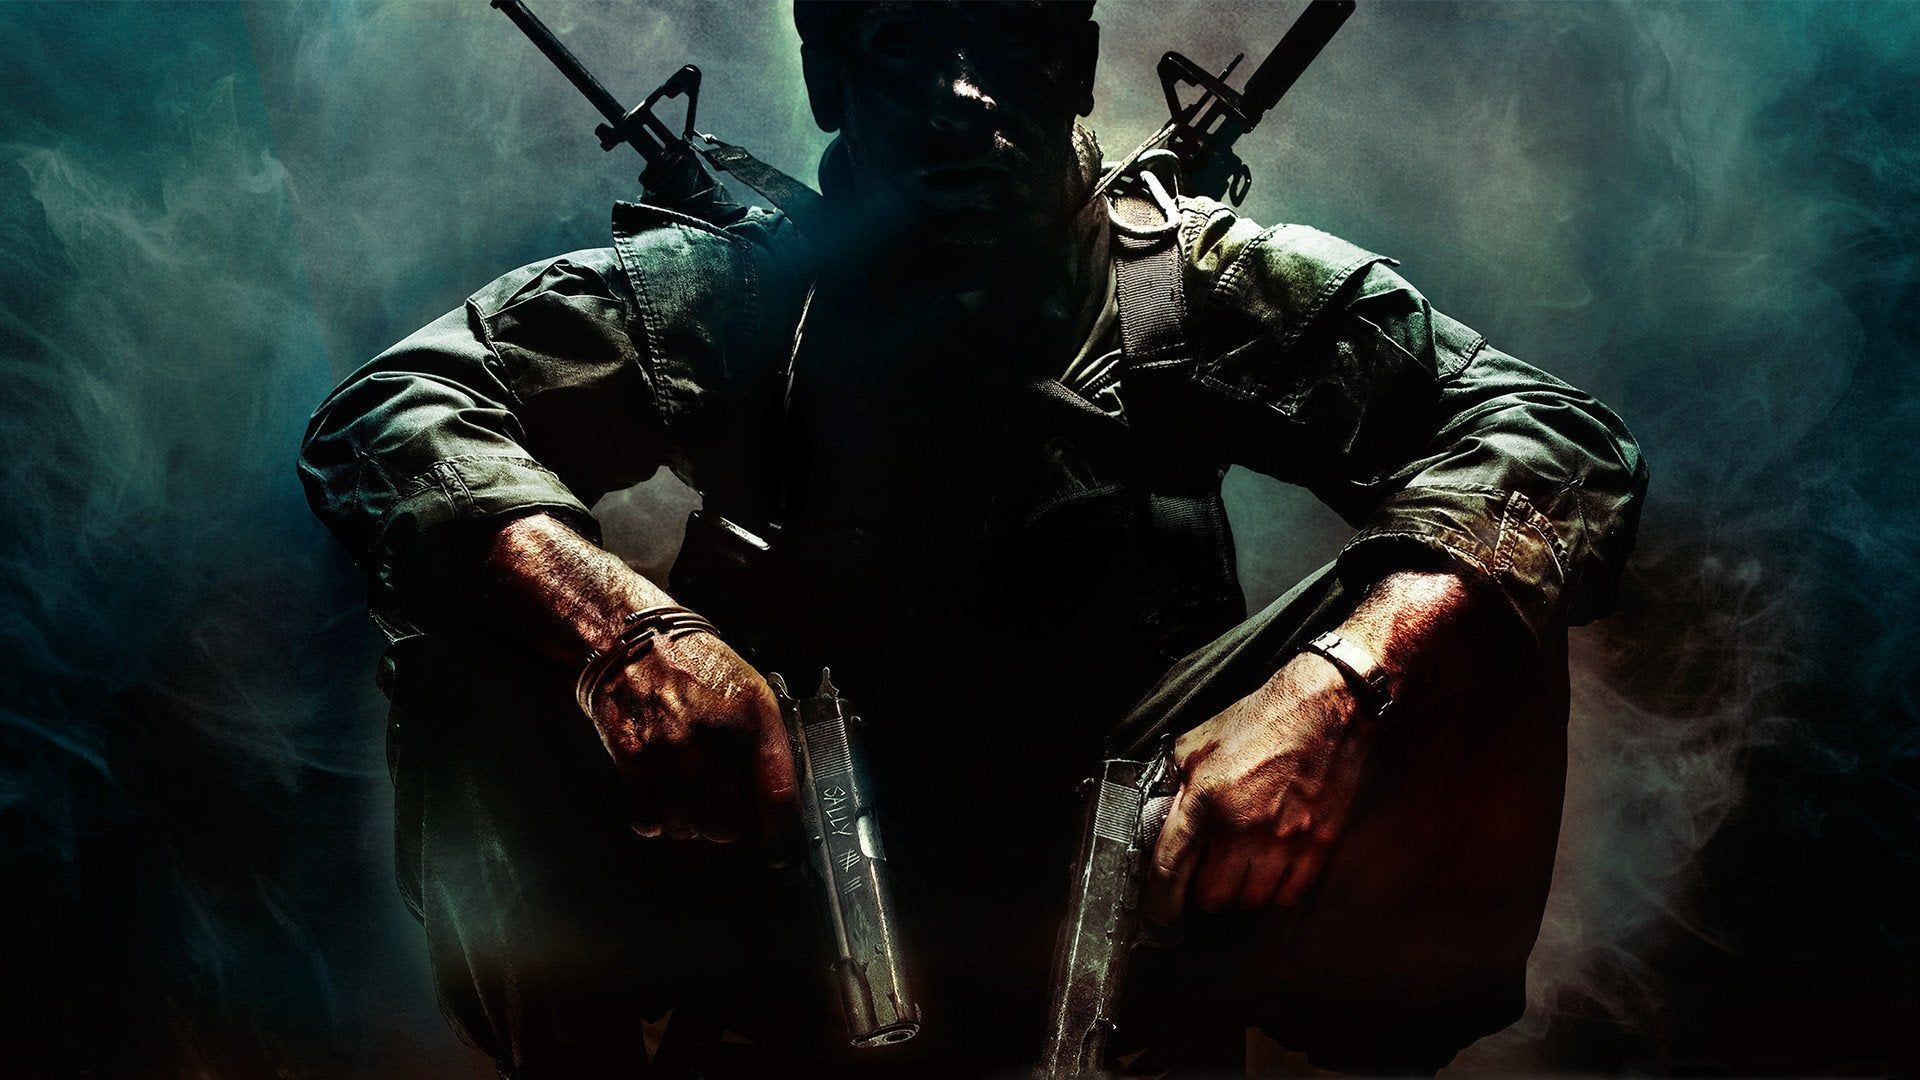 Call Of Duty Classified Rumor Suggests The Black Ops Reboot Could Be Set In Vietnam In 2020 Call Of Duty Call Of Duty Black Gaming Wallpapers